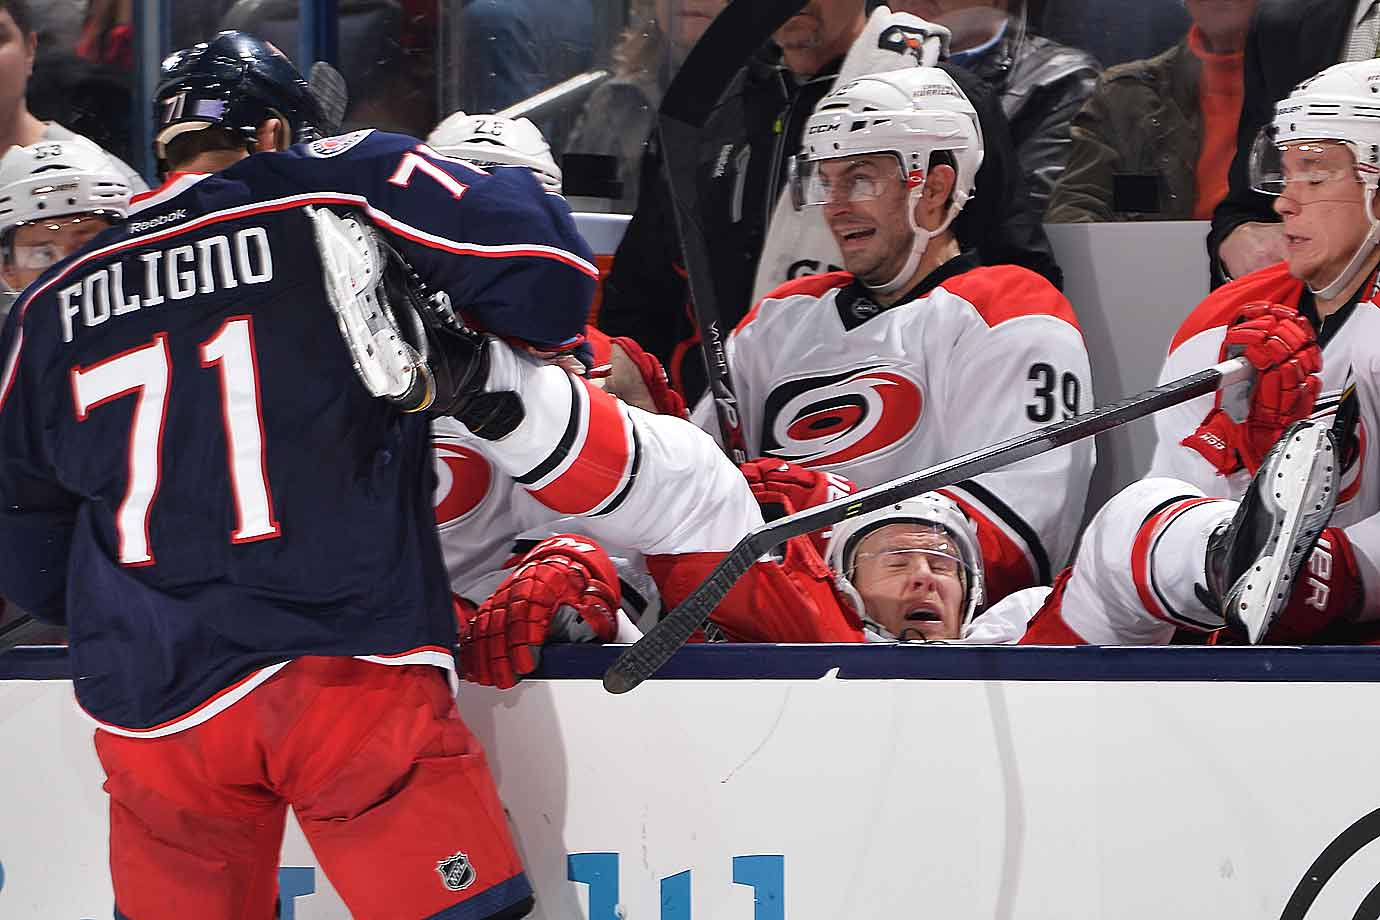 Nash bash: Nick Foligno of the Blue Jackets deposits Riley Nash of the Hurricanes onto Carolina's bench during the third period of their game at Nationwide Arena in Columbus  on November 4, 2014.